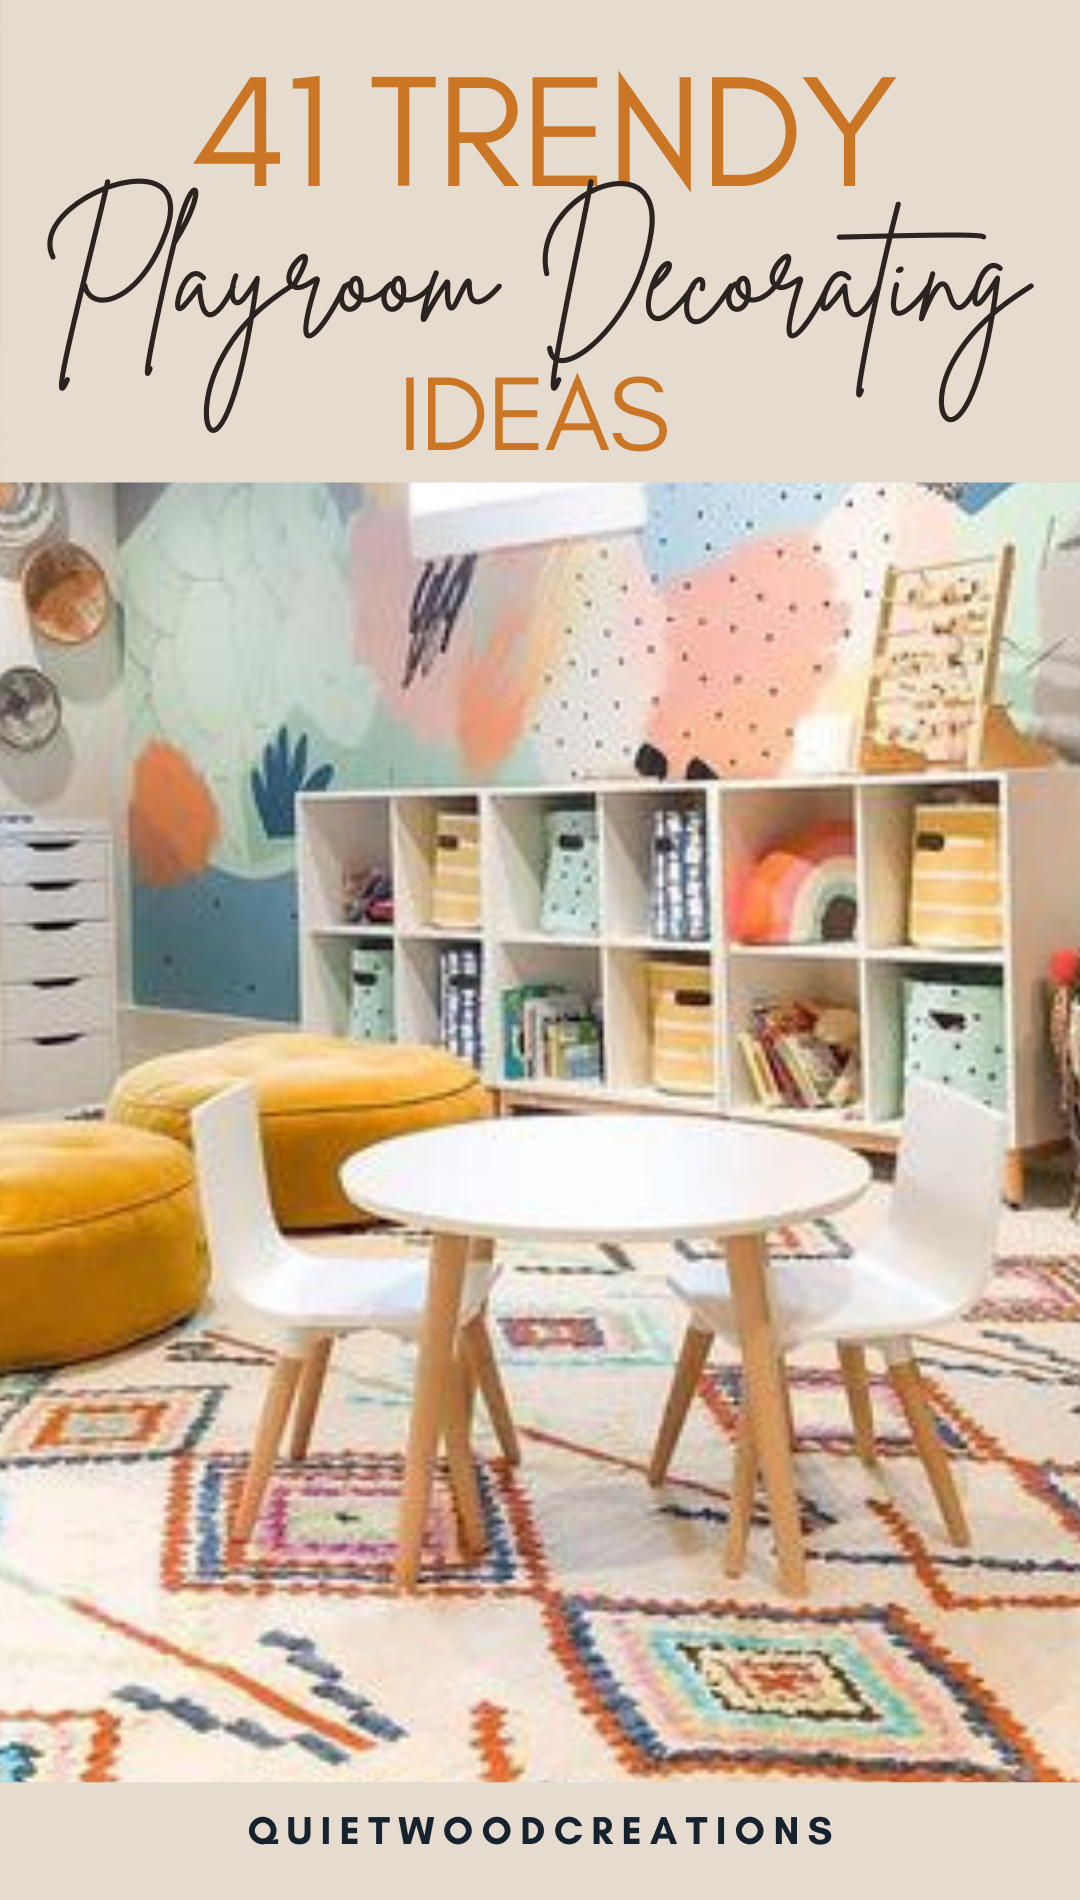 We have 41 ideas for how to decorate your playroom in a way that checks all the boxes #playroom #kidsdecor #nurserydecor